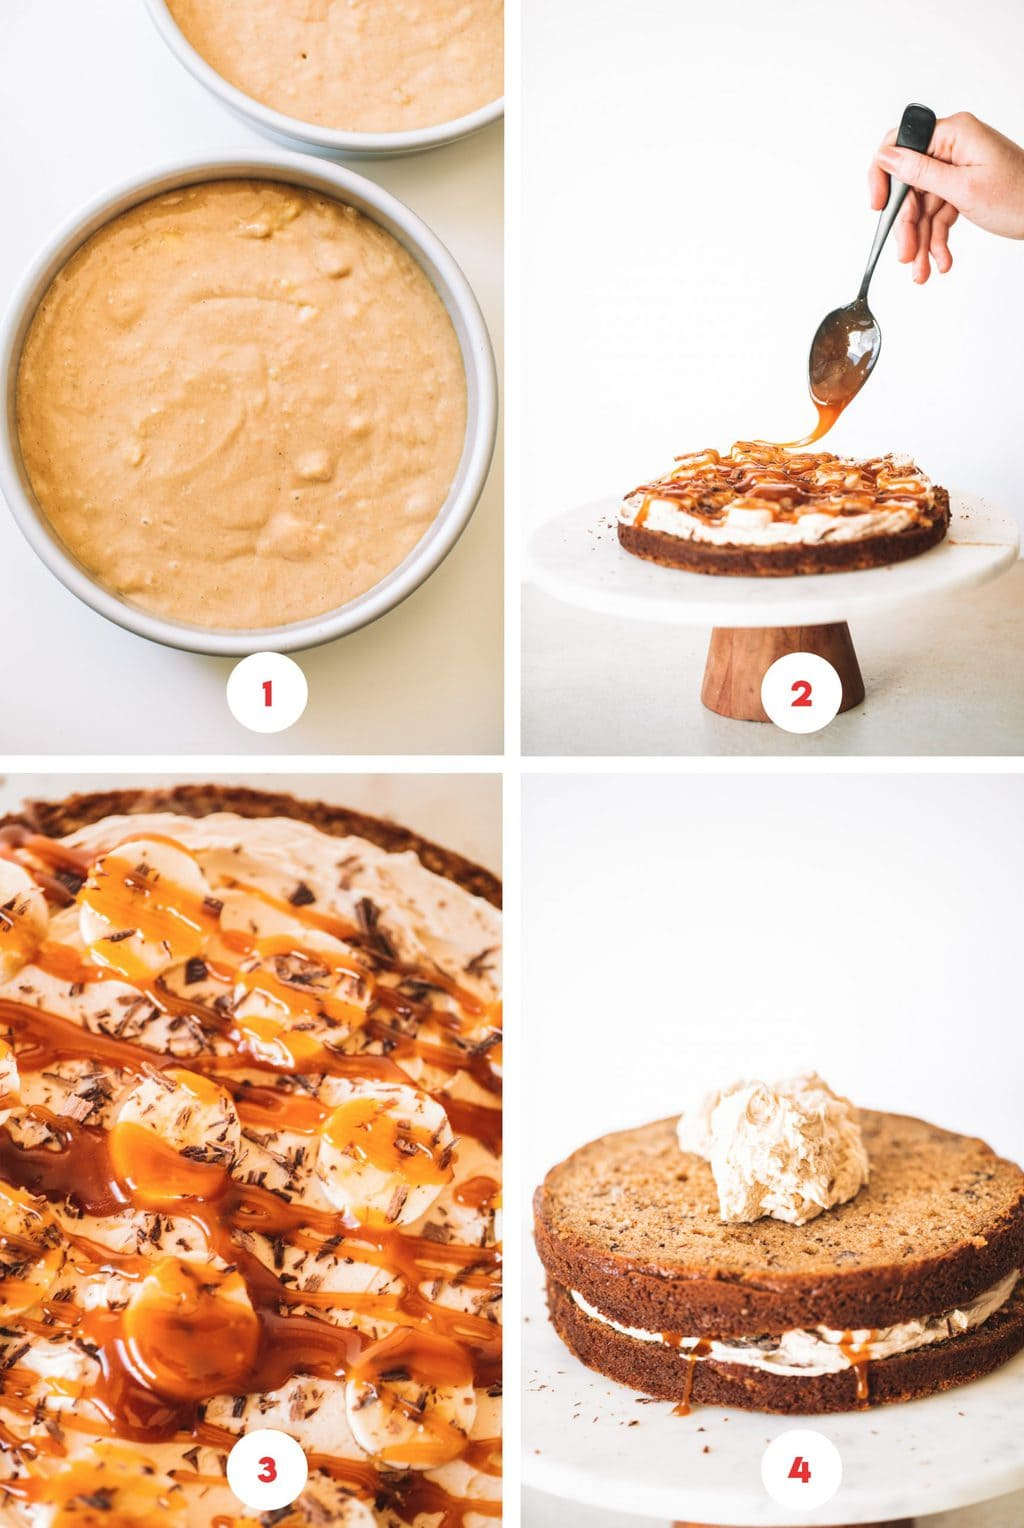 Step by step photos of how to make banoffee cake.